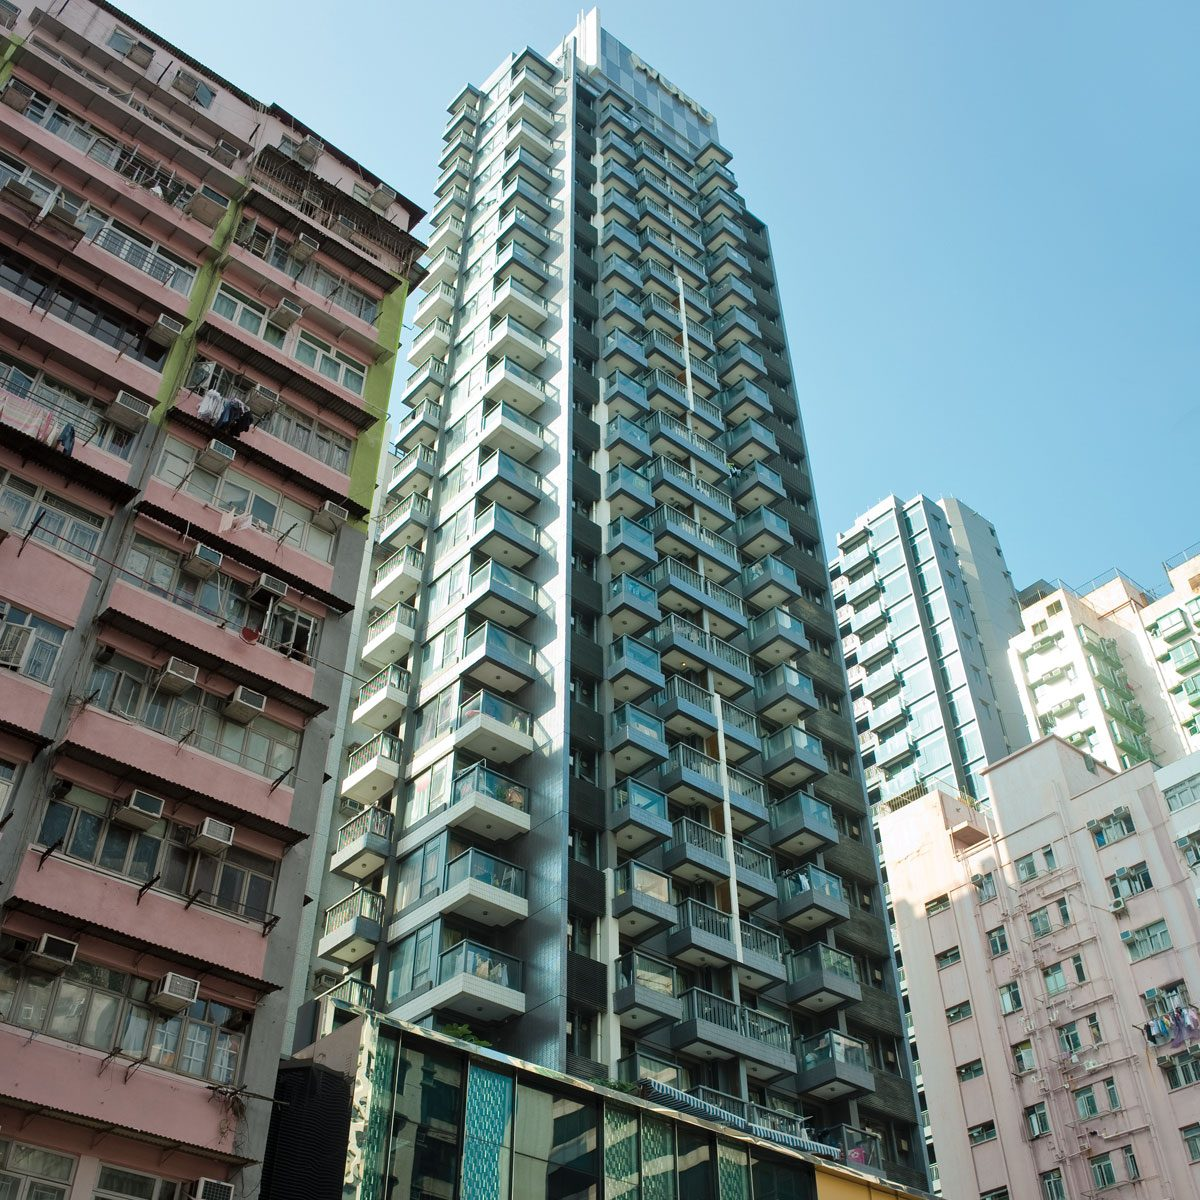 Wuhu Residence, Residential Development at No. 111 Wuhu Street, Hunghom, Kowloon